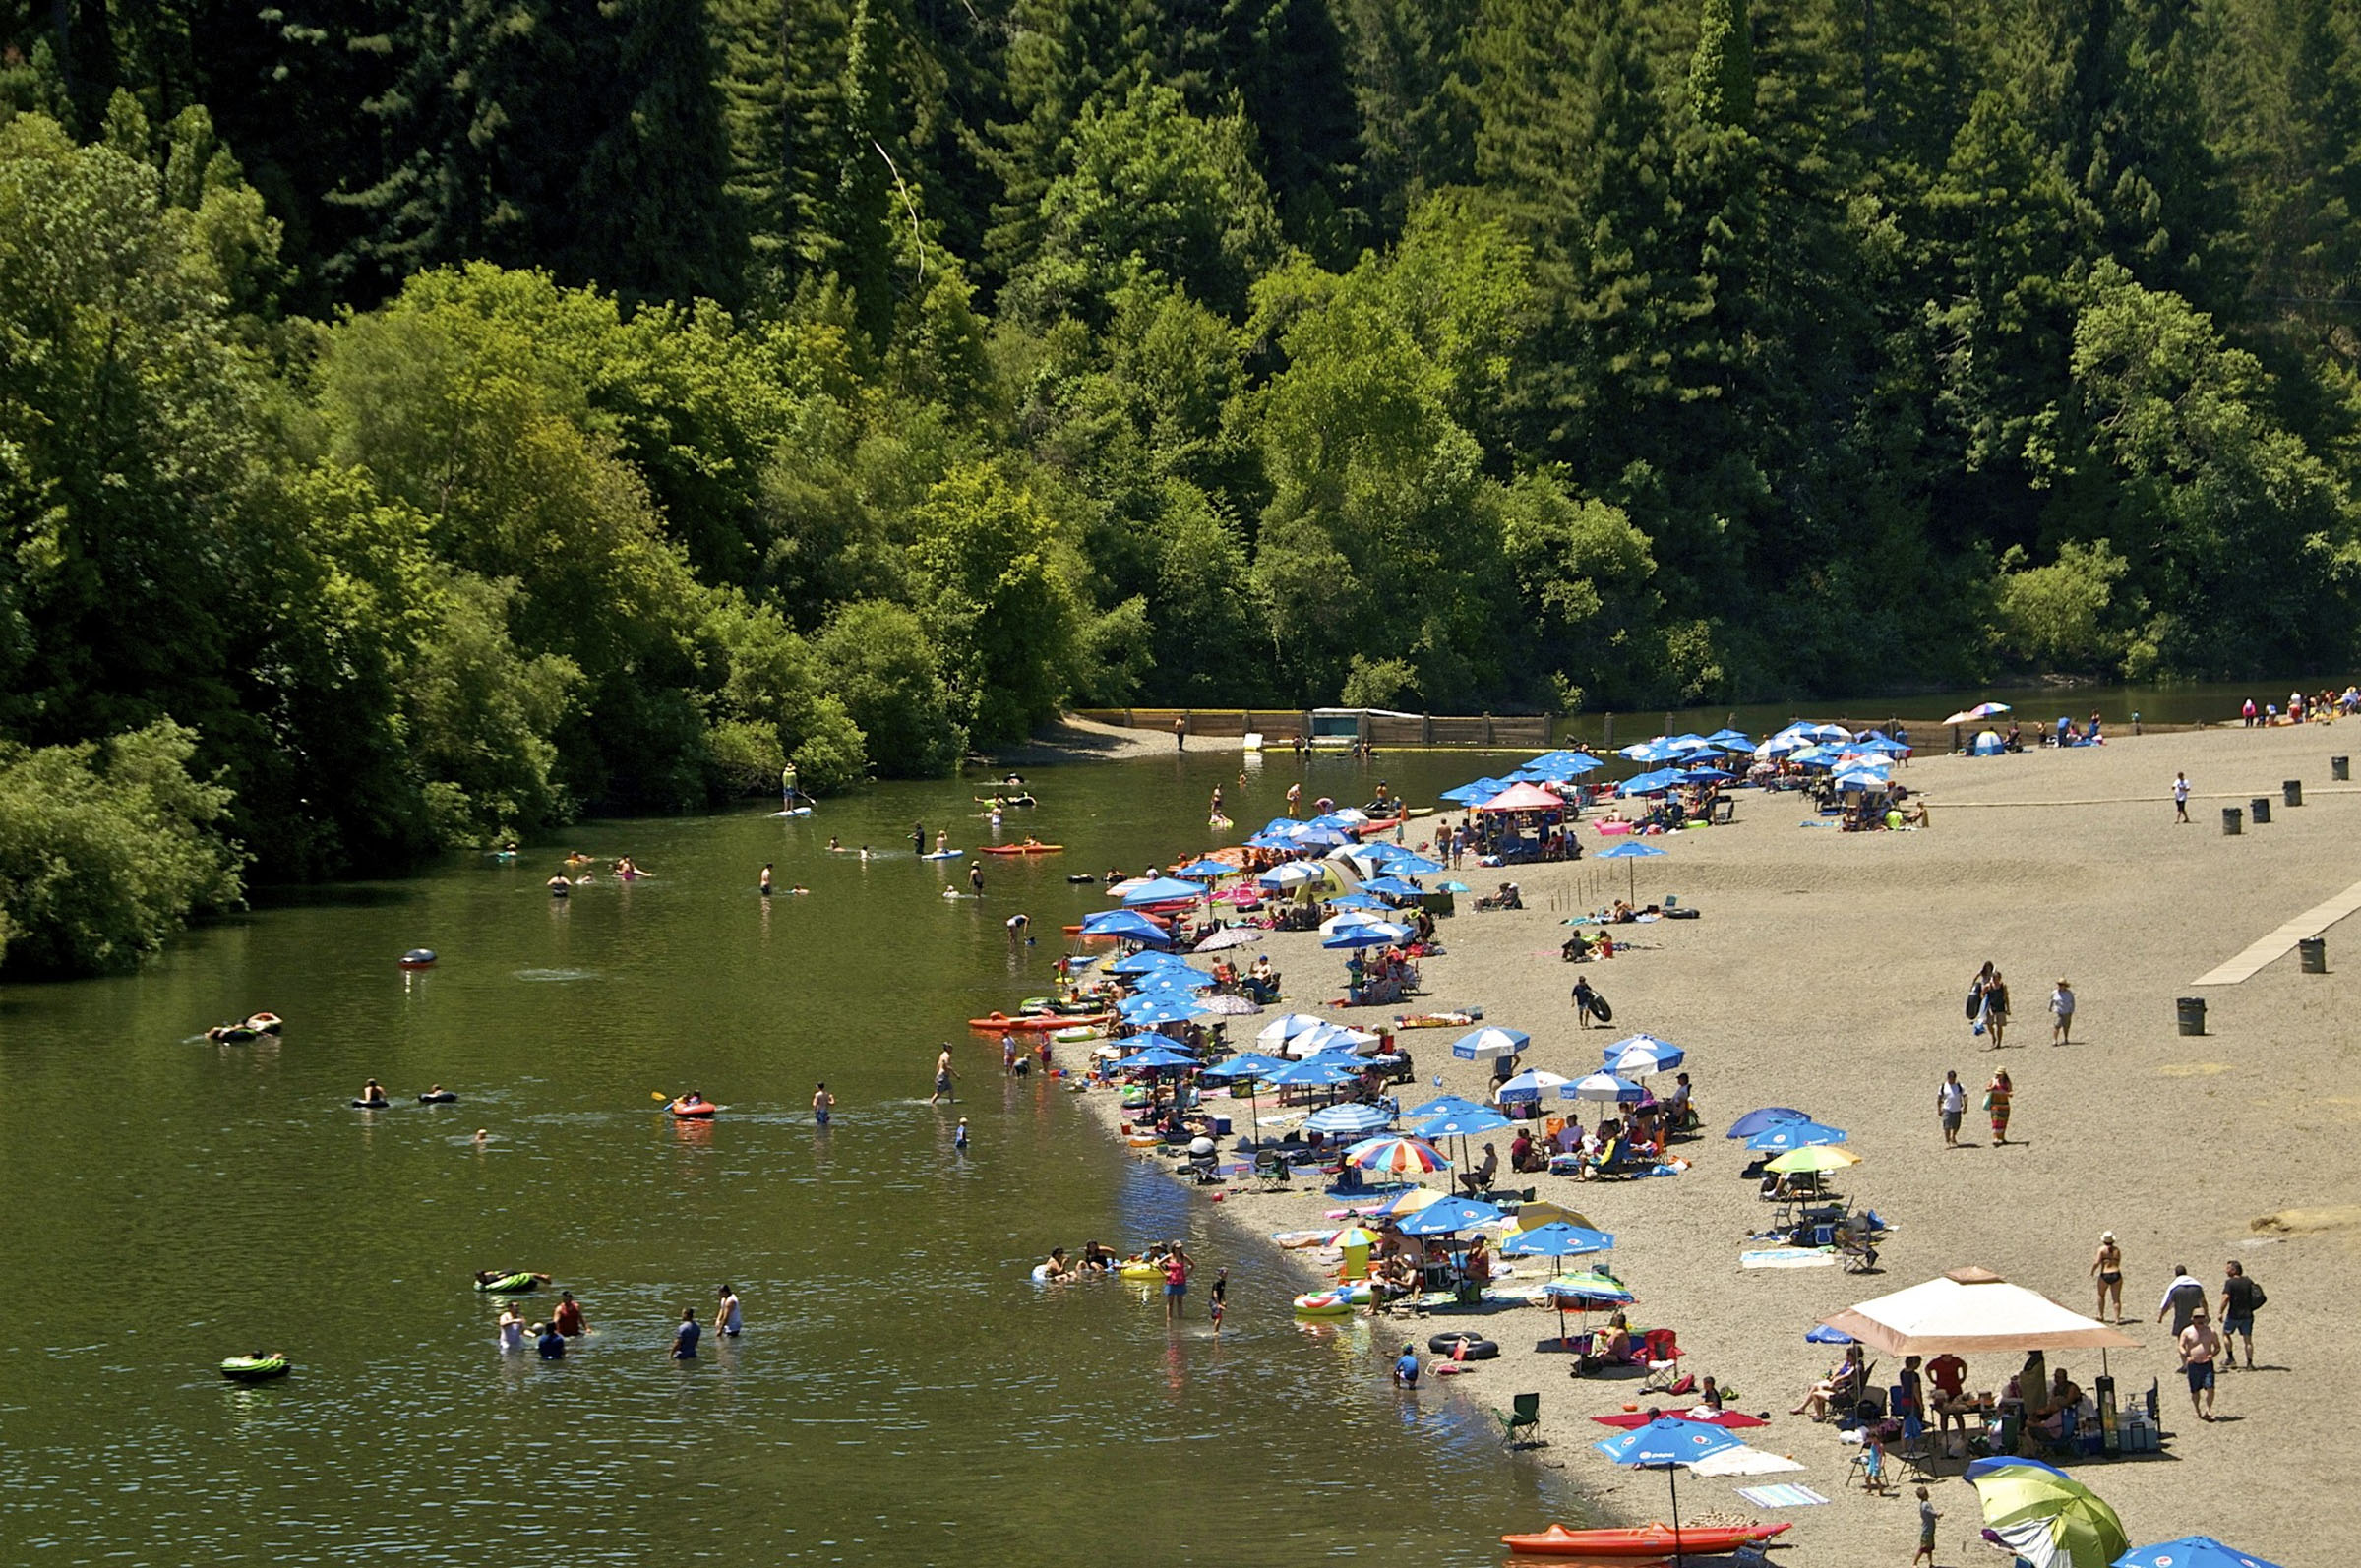 Johnsons Beach on the Russian River in Guerneville, Sonoma County, California